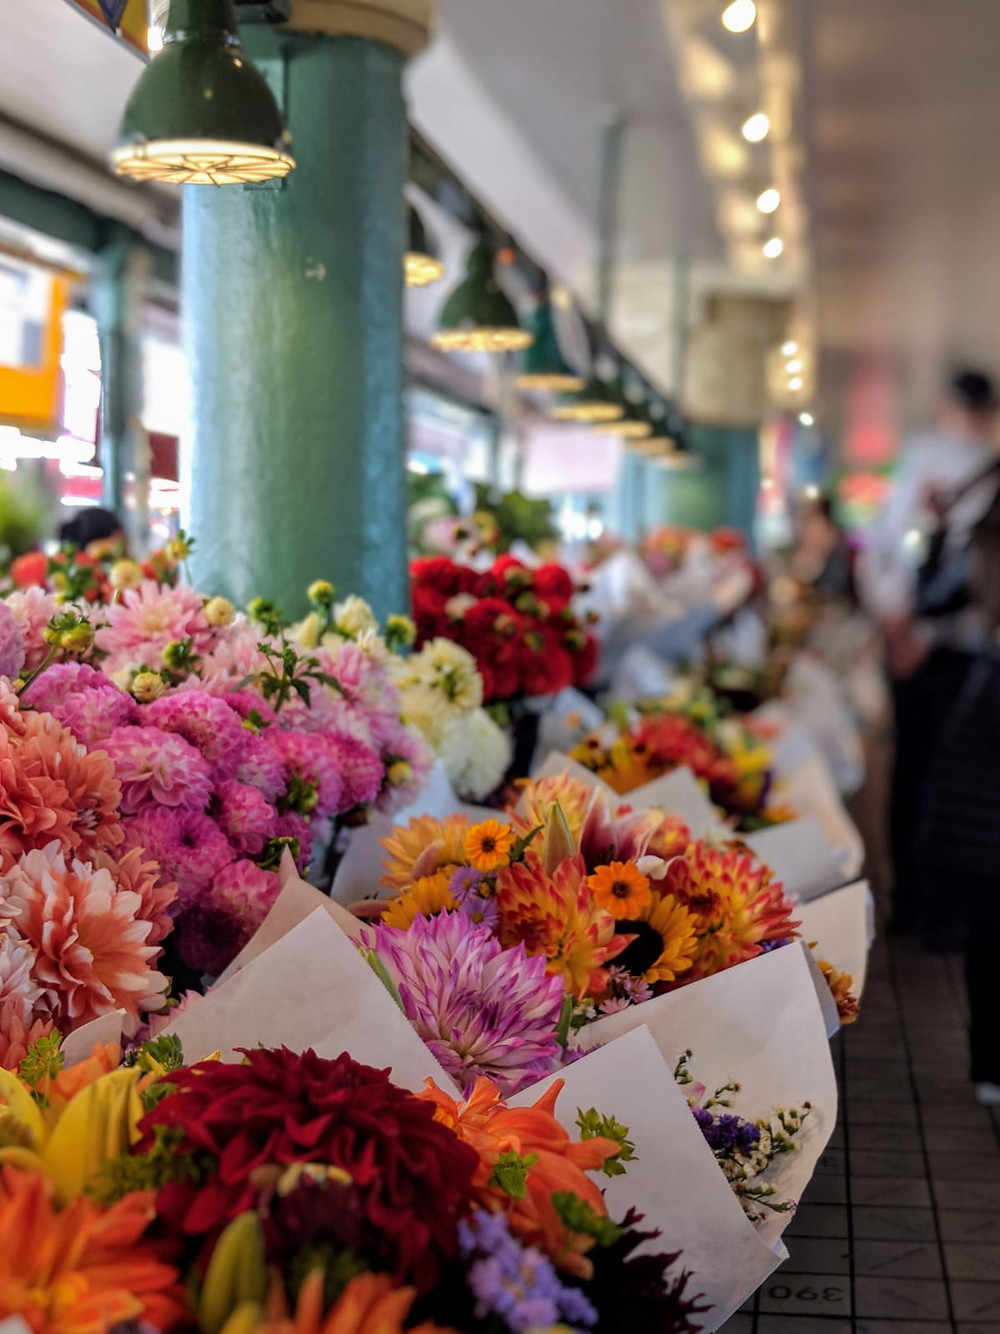 Flower market at Pike Place Market, Seattle